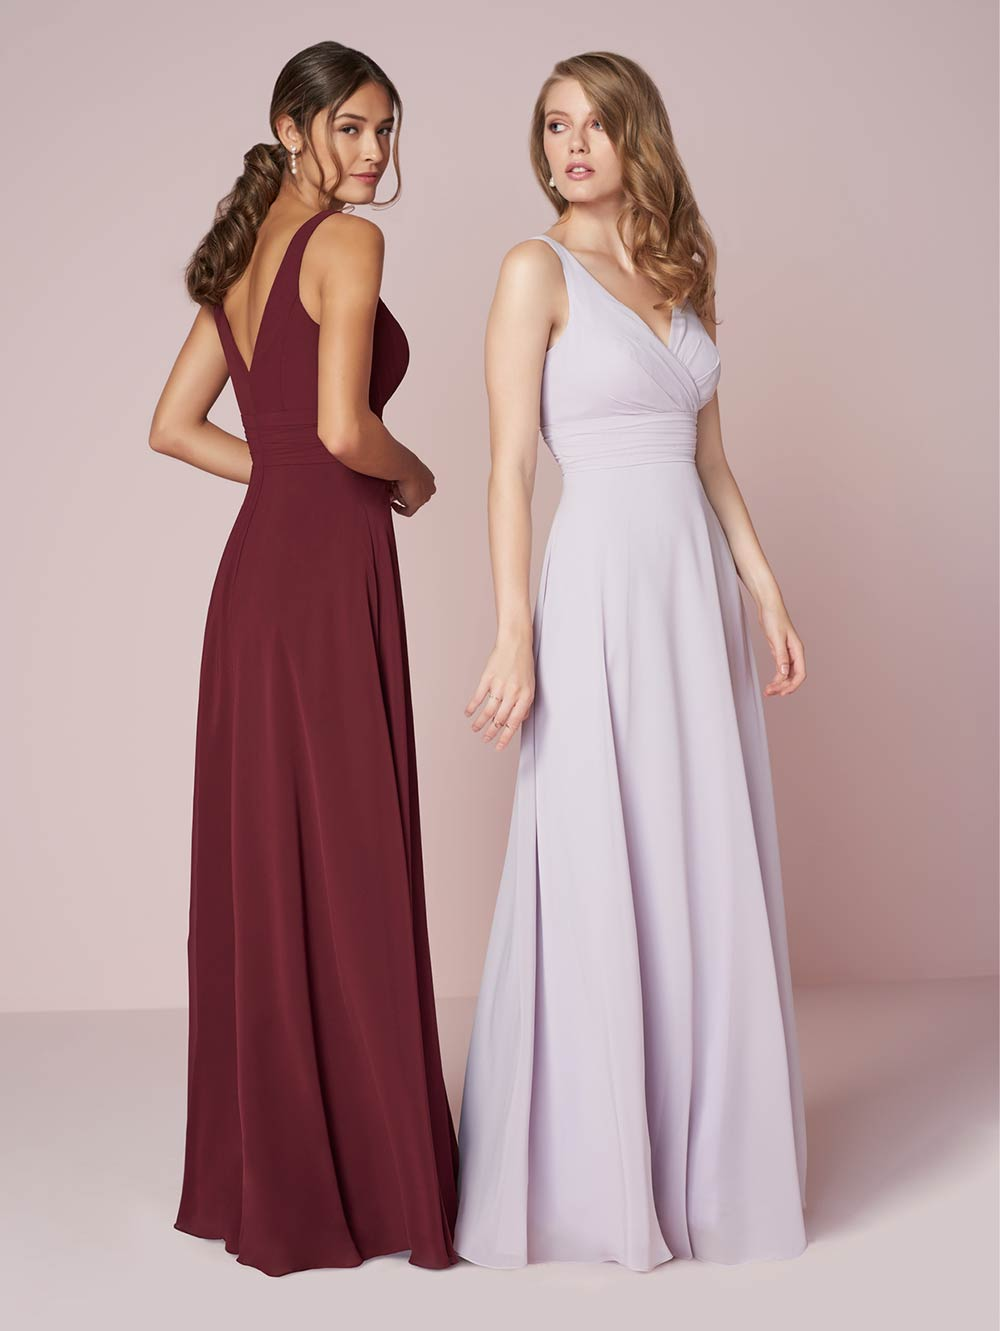 bridesmaid-dresses-jacquelin-bridals-canada-27769